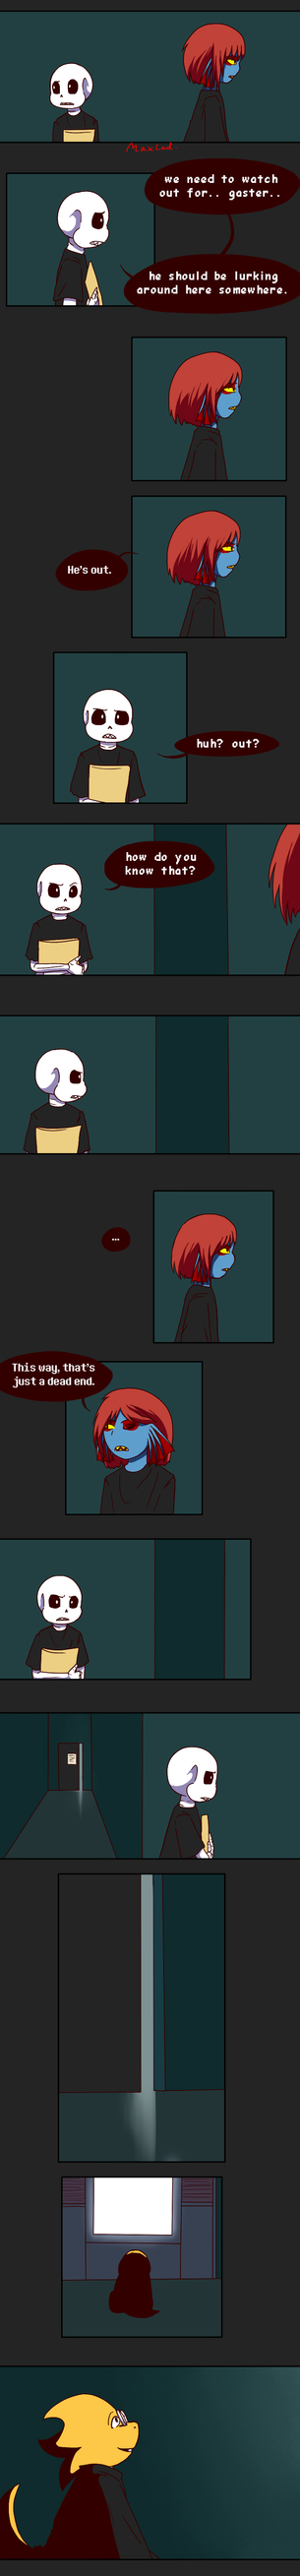 His past page 5 by Maxlad